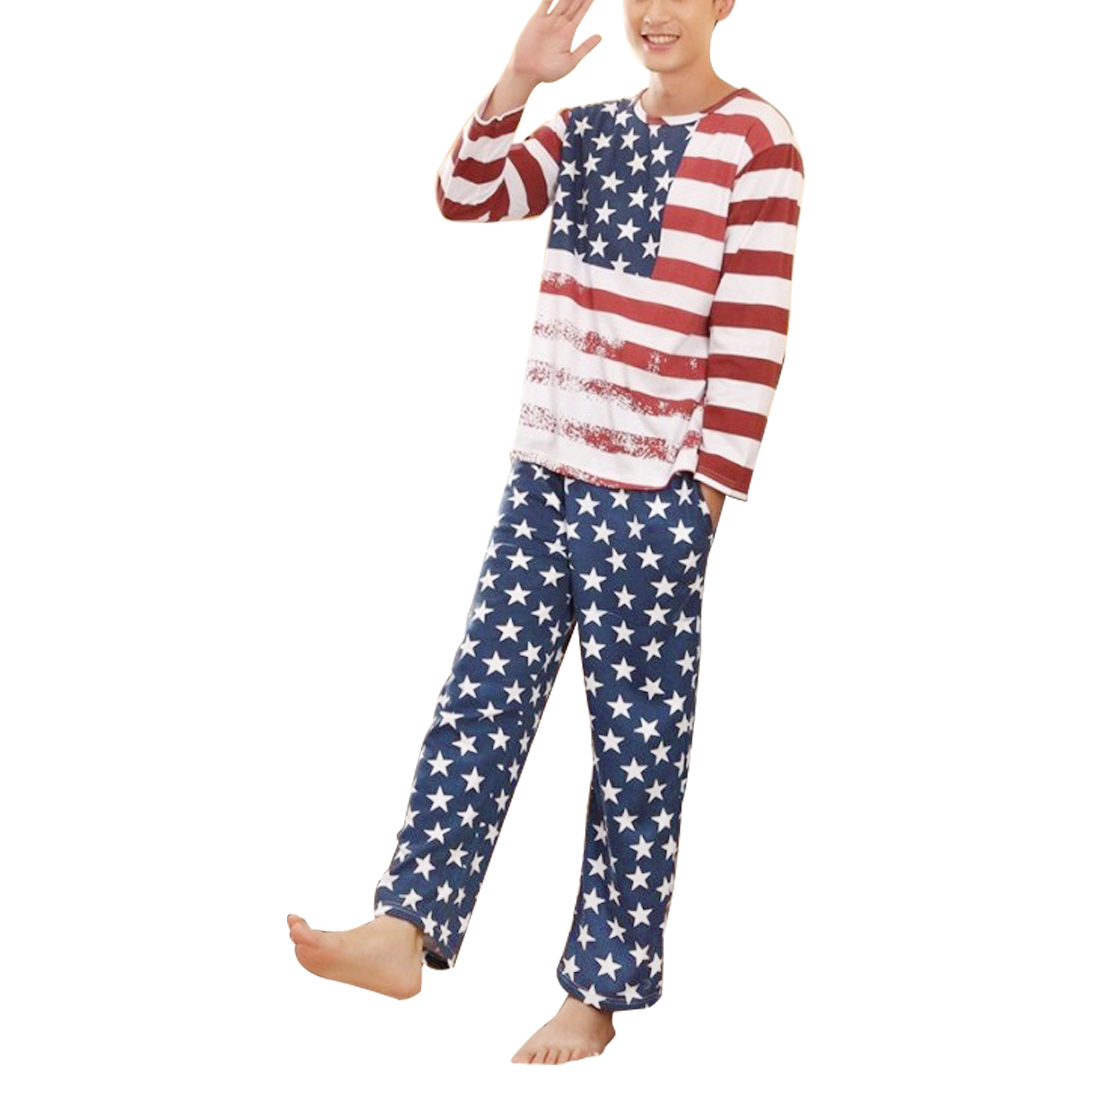 Lovers Men Long Sleeve Navy Blue Red White American Flag Design Pajama Sets M